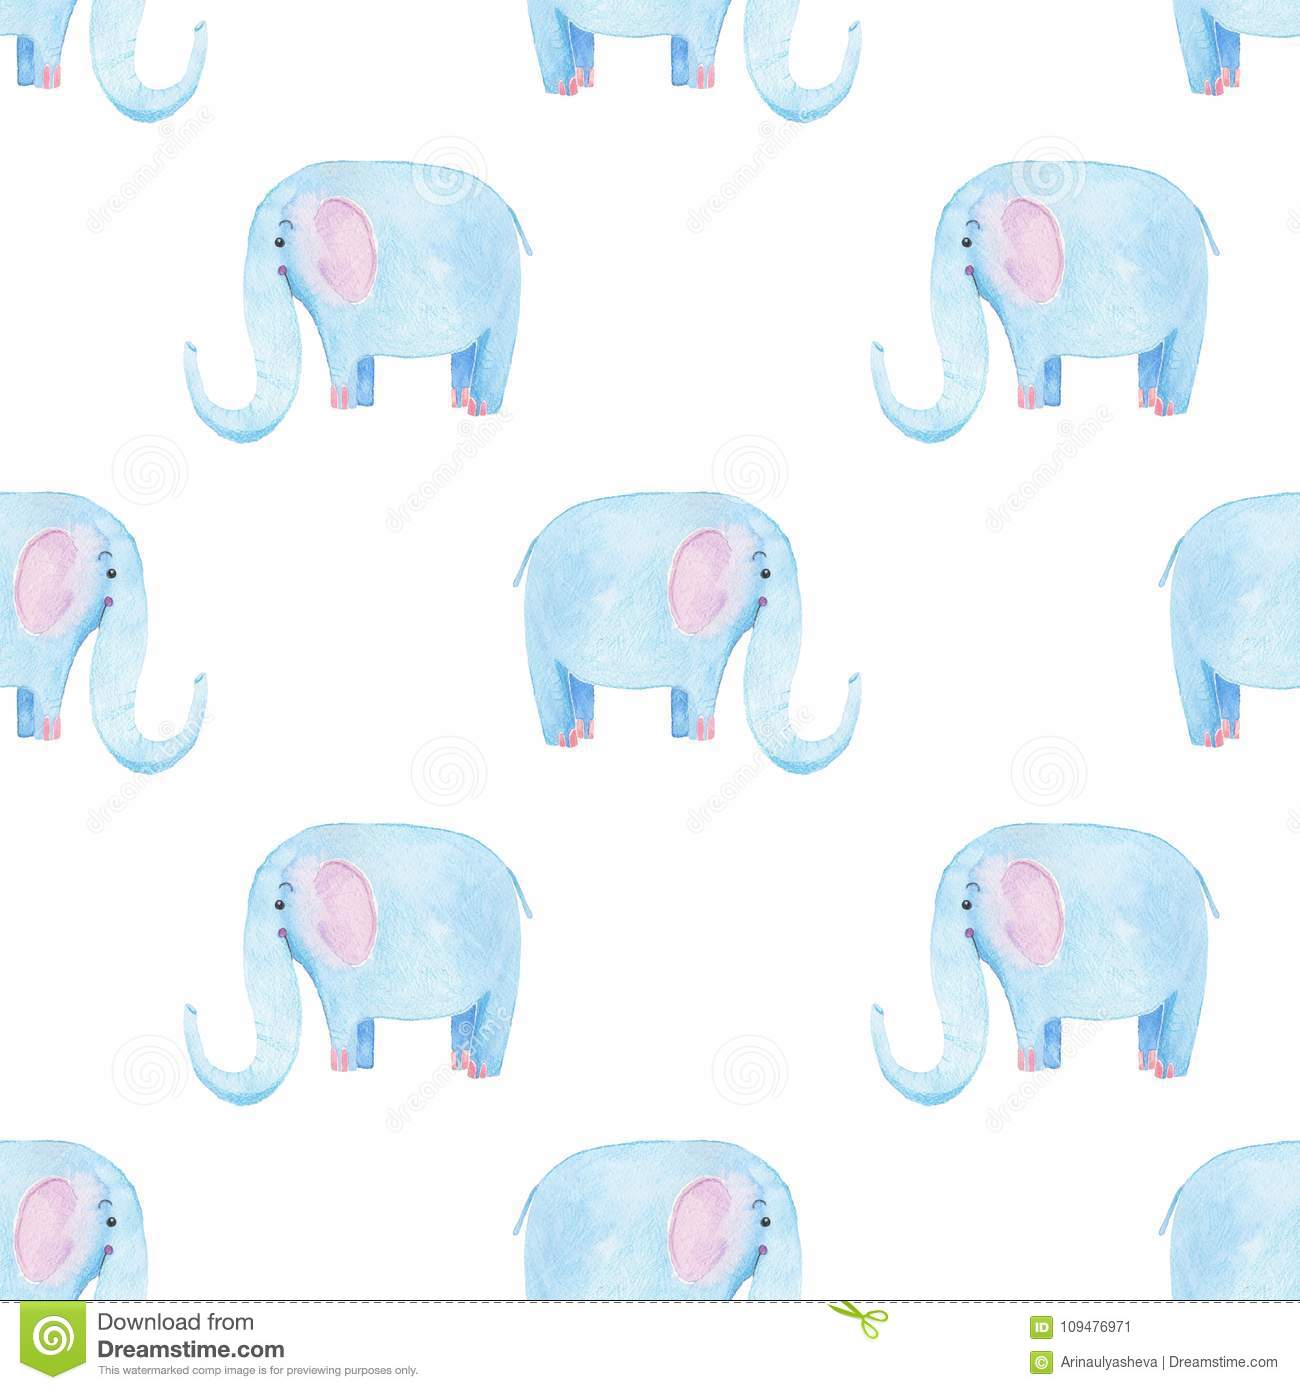 Baby Girl Nursery Wallpaper Borders Cute Elephant Pattern Seamless Watercolor Background With